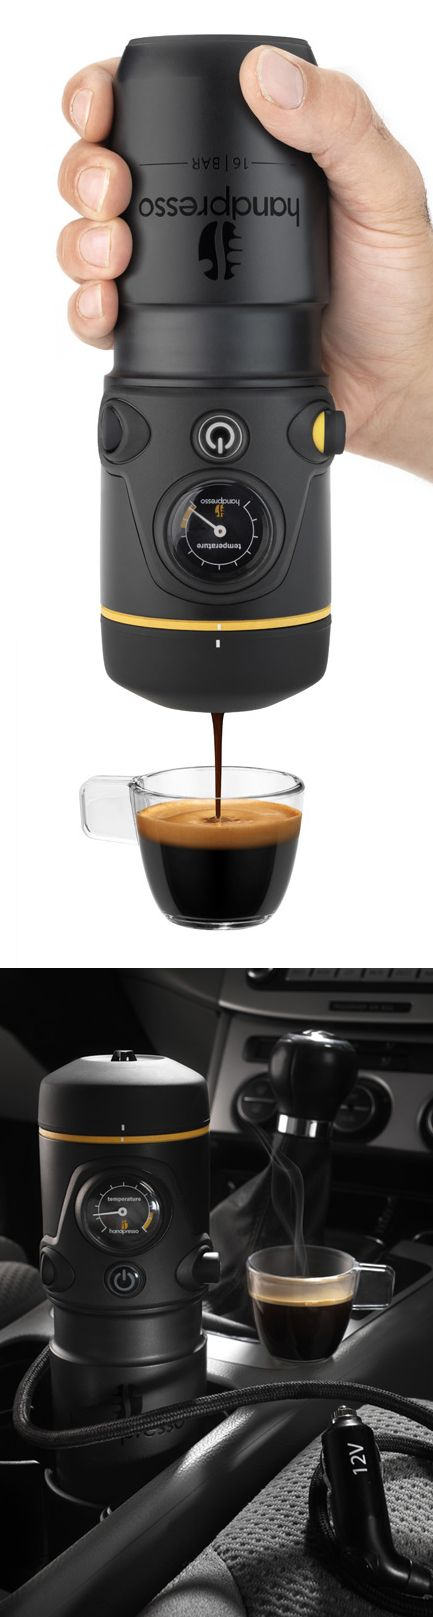 Portable Coffee Maker For The Car : Portable Coffee Maker // simply plug the Handpresso into your car and have fresh brewed espresso ...